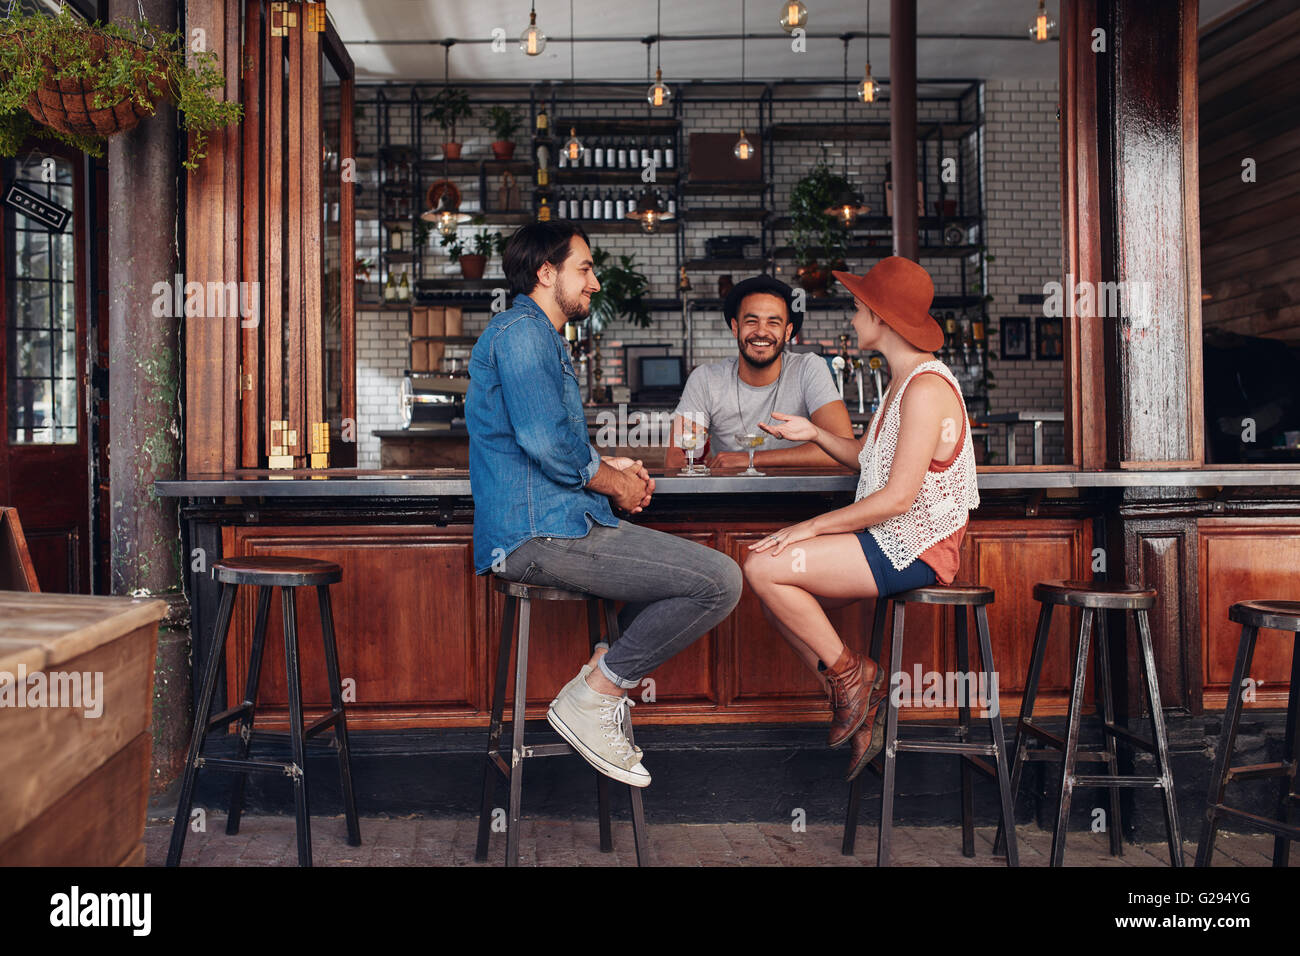 Group of young people sitting in a cafe and talking. Young men and women meeting at cafe table. - Stock Image